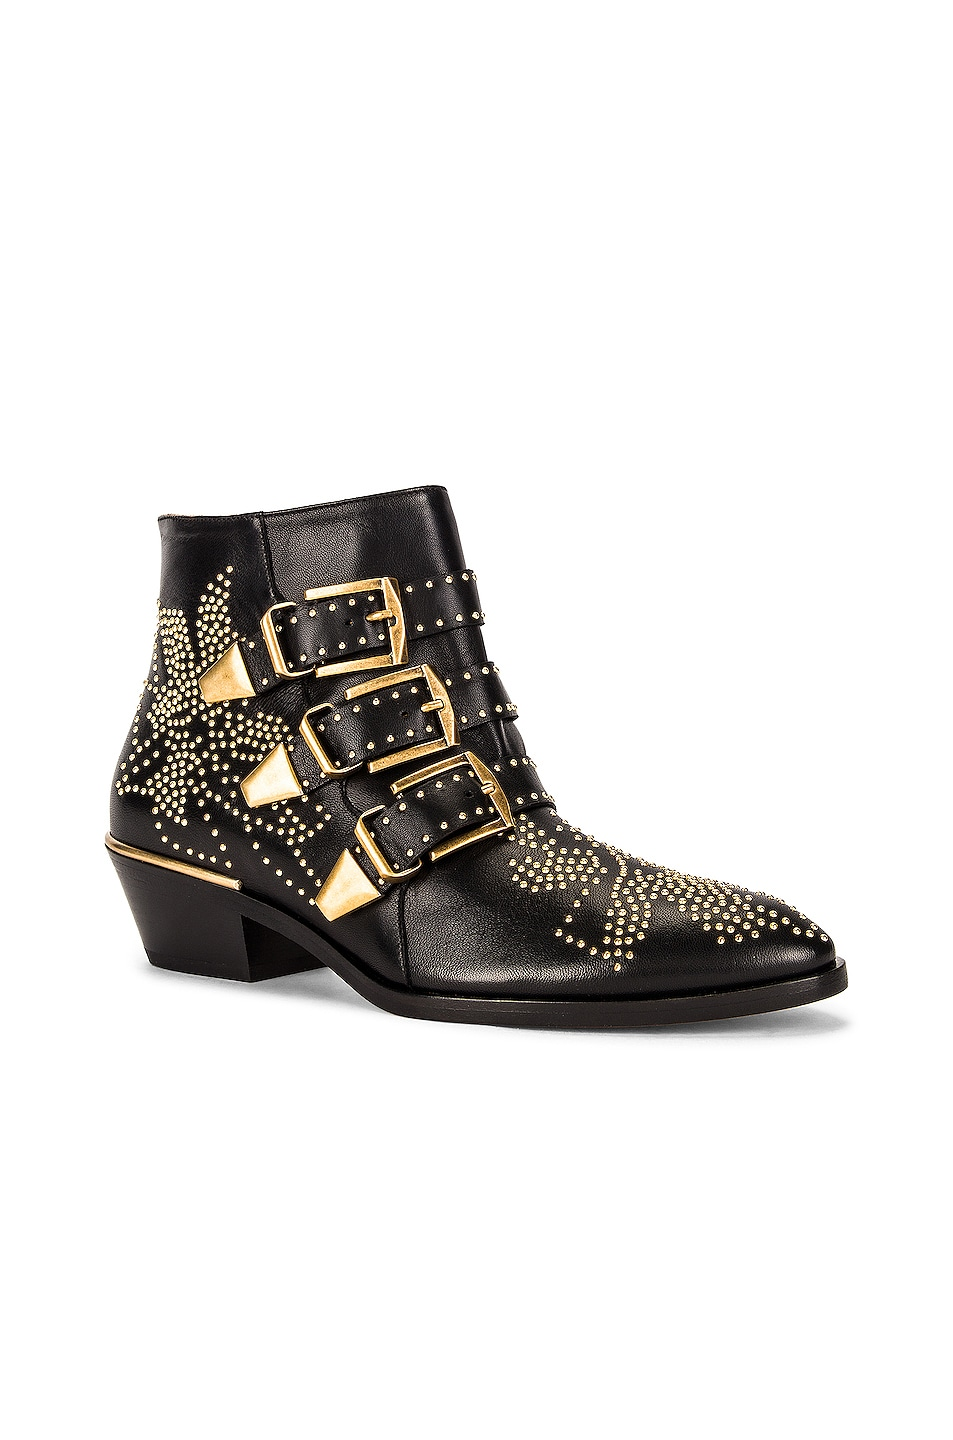 Image 2 of Chloe Susanna Leather Studded Booties in Black & Gold